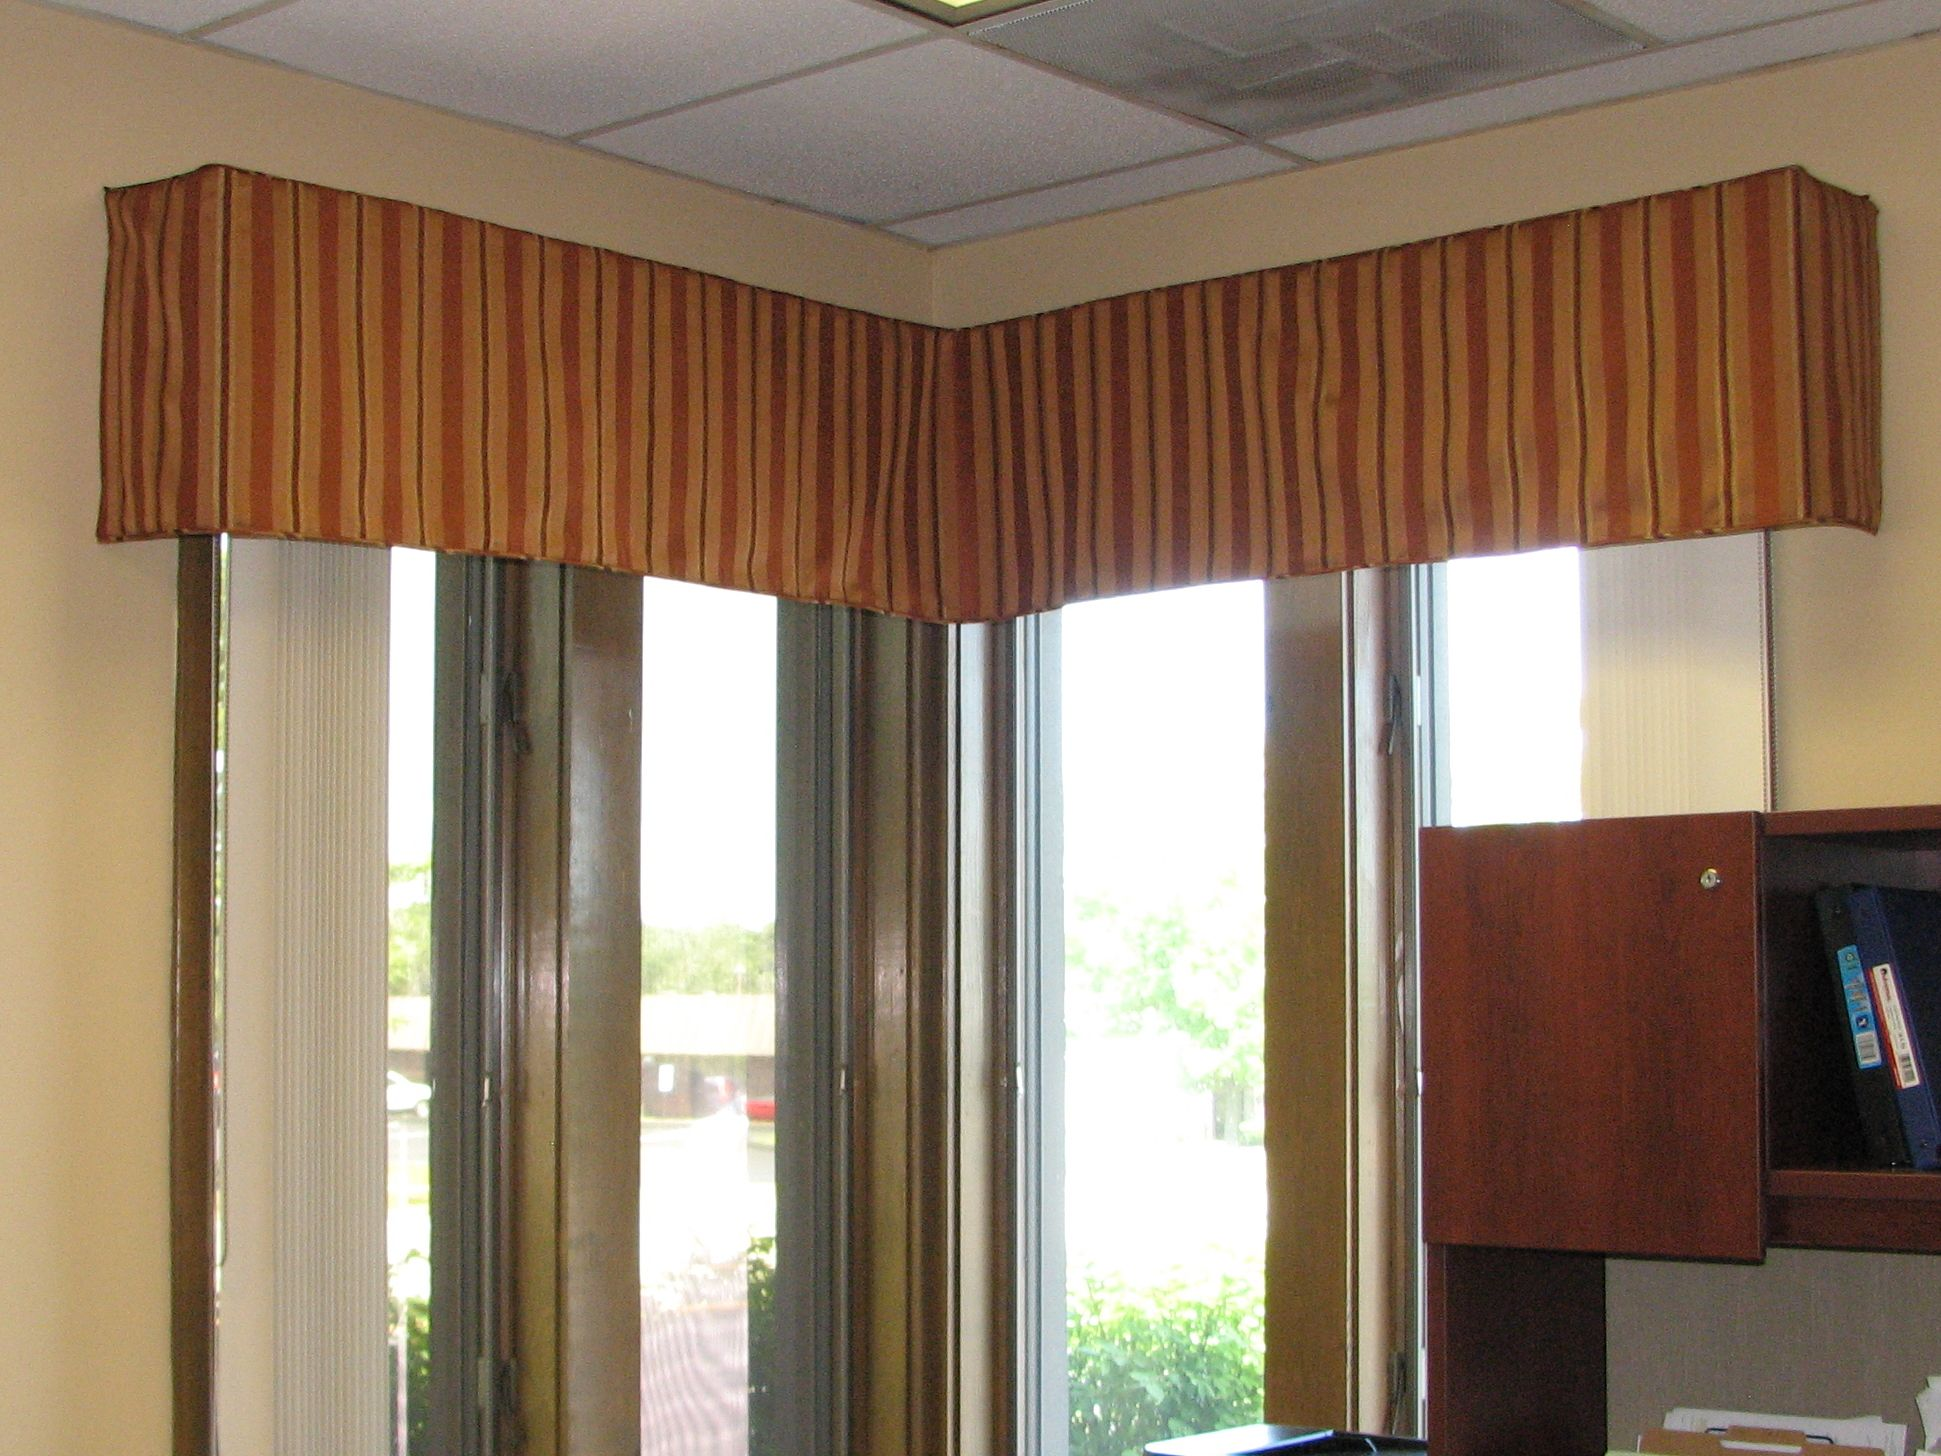 Superb A Corner Valance Custom Fit To Office Window